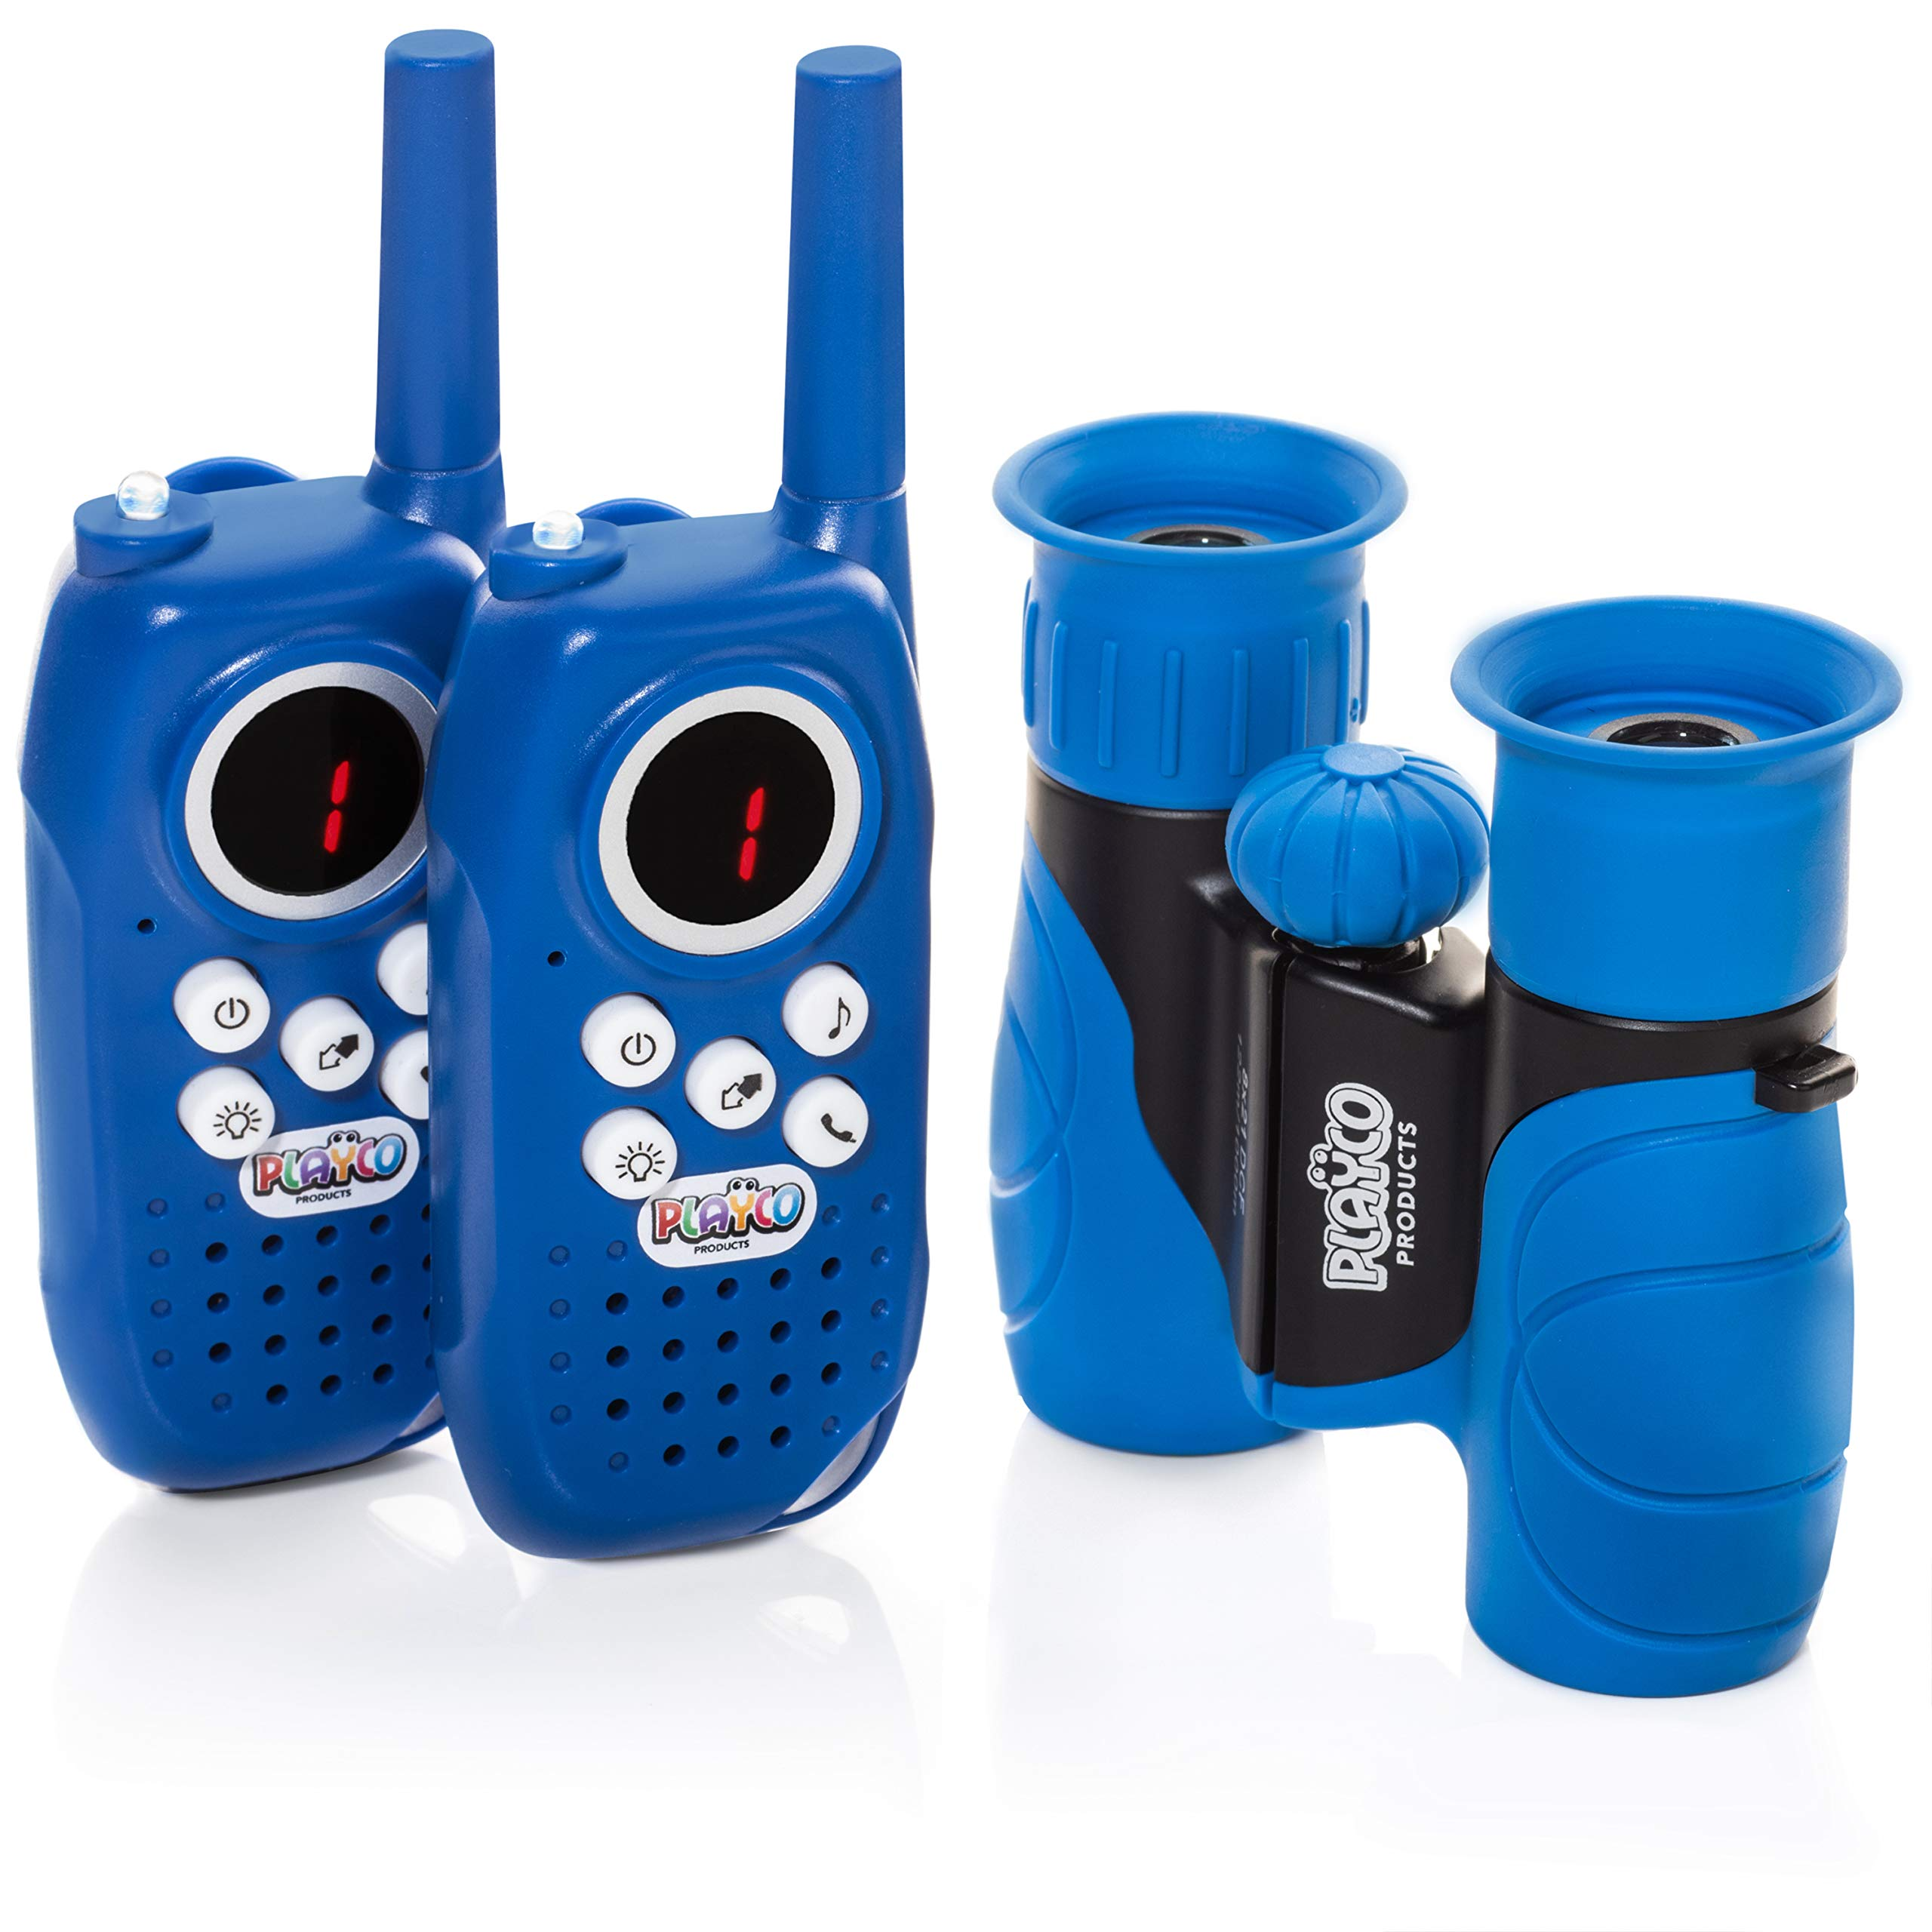 Playco Walkie Talkies and Binoculars for Kids - 2 Mile Range, Crystal Clear Sound, 8X21 Optical Lens by Playco (Image #1)